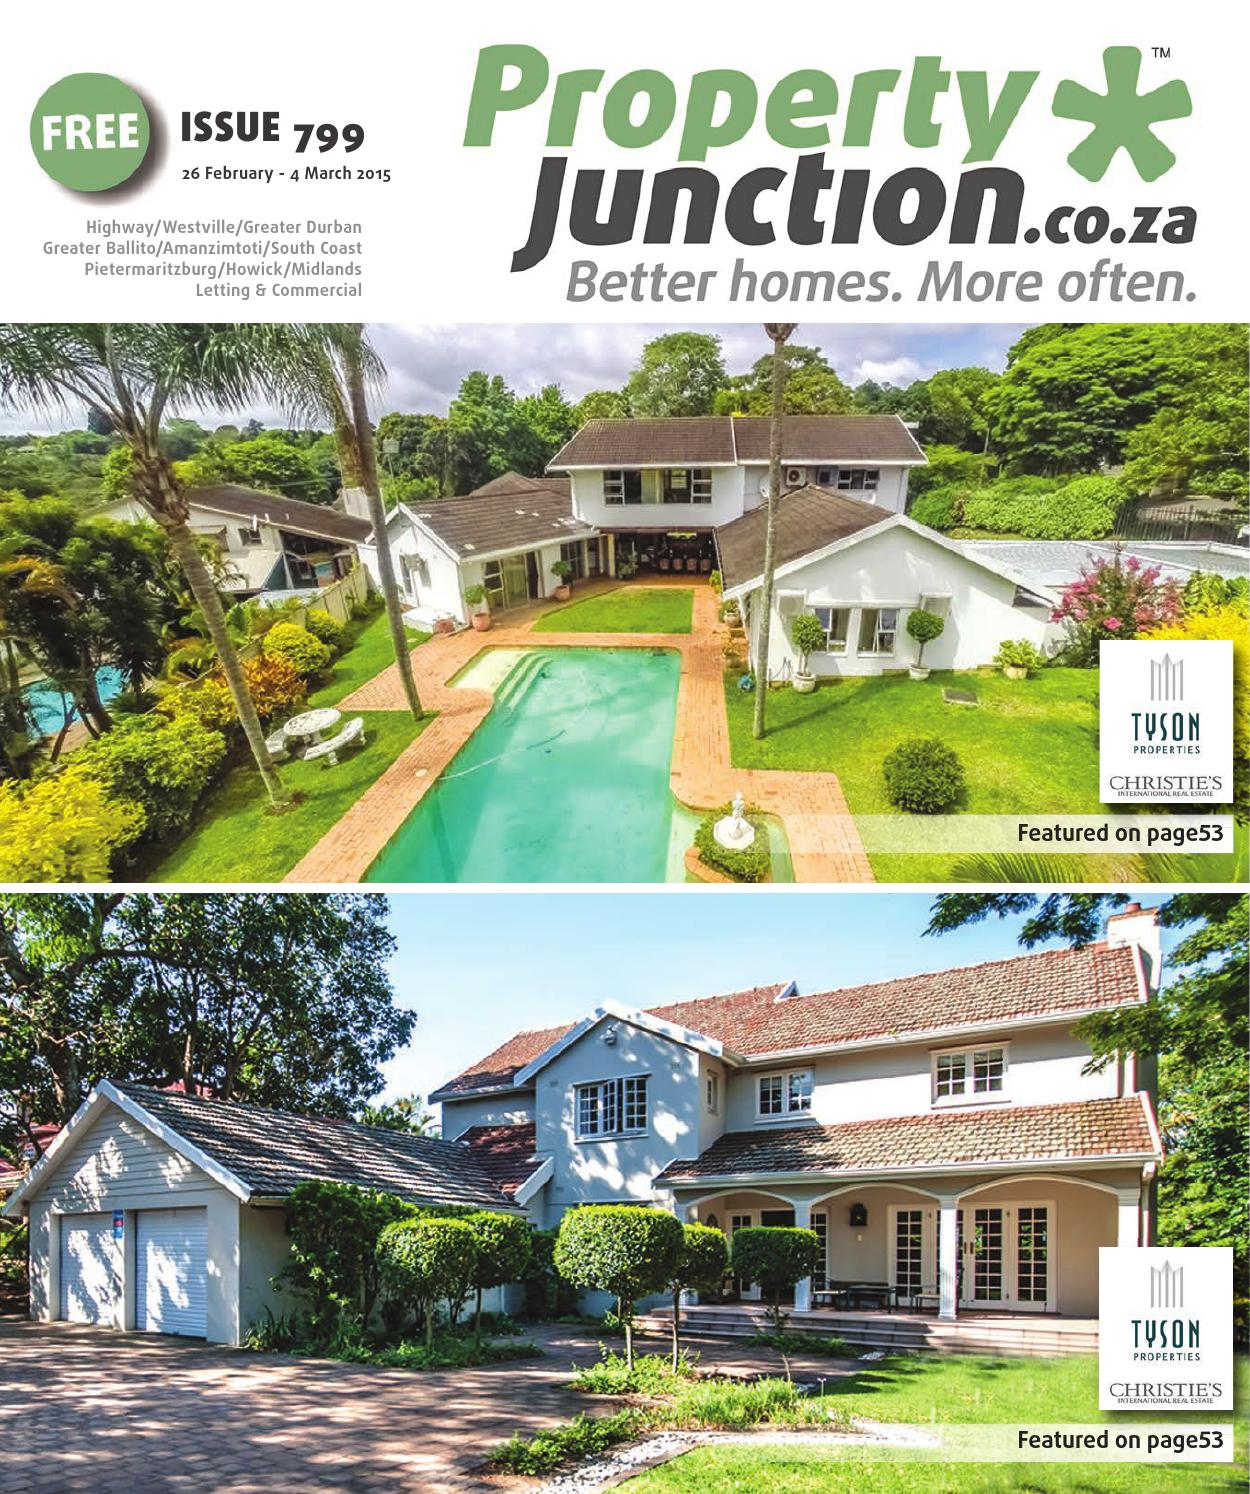 Kwazulu - Natal Issue 799 by PropertyJunction - issuu